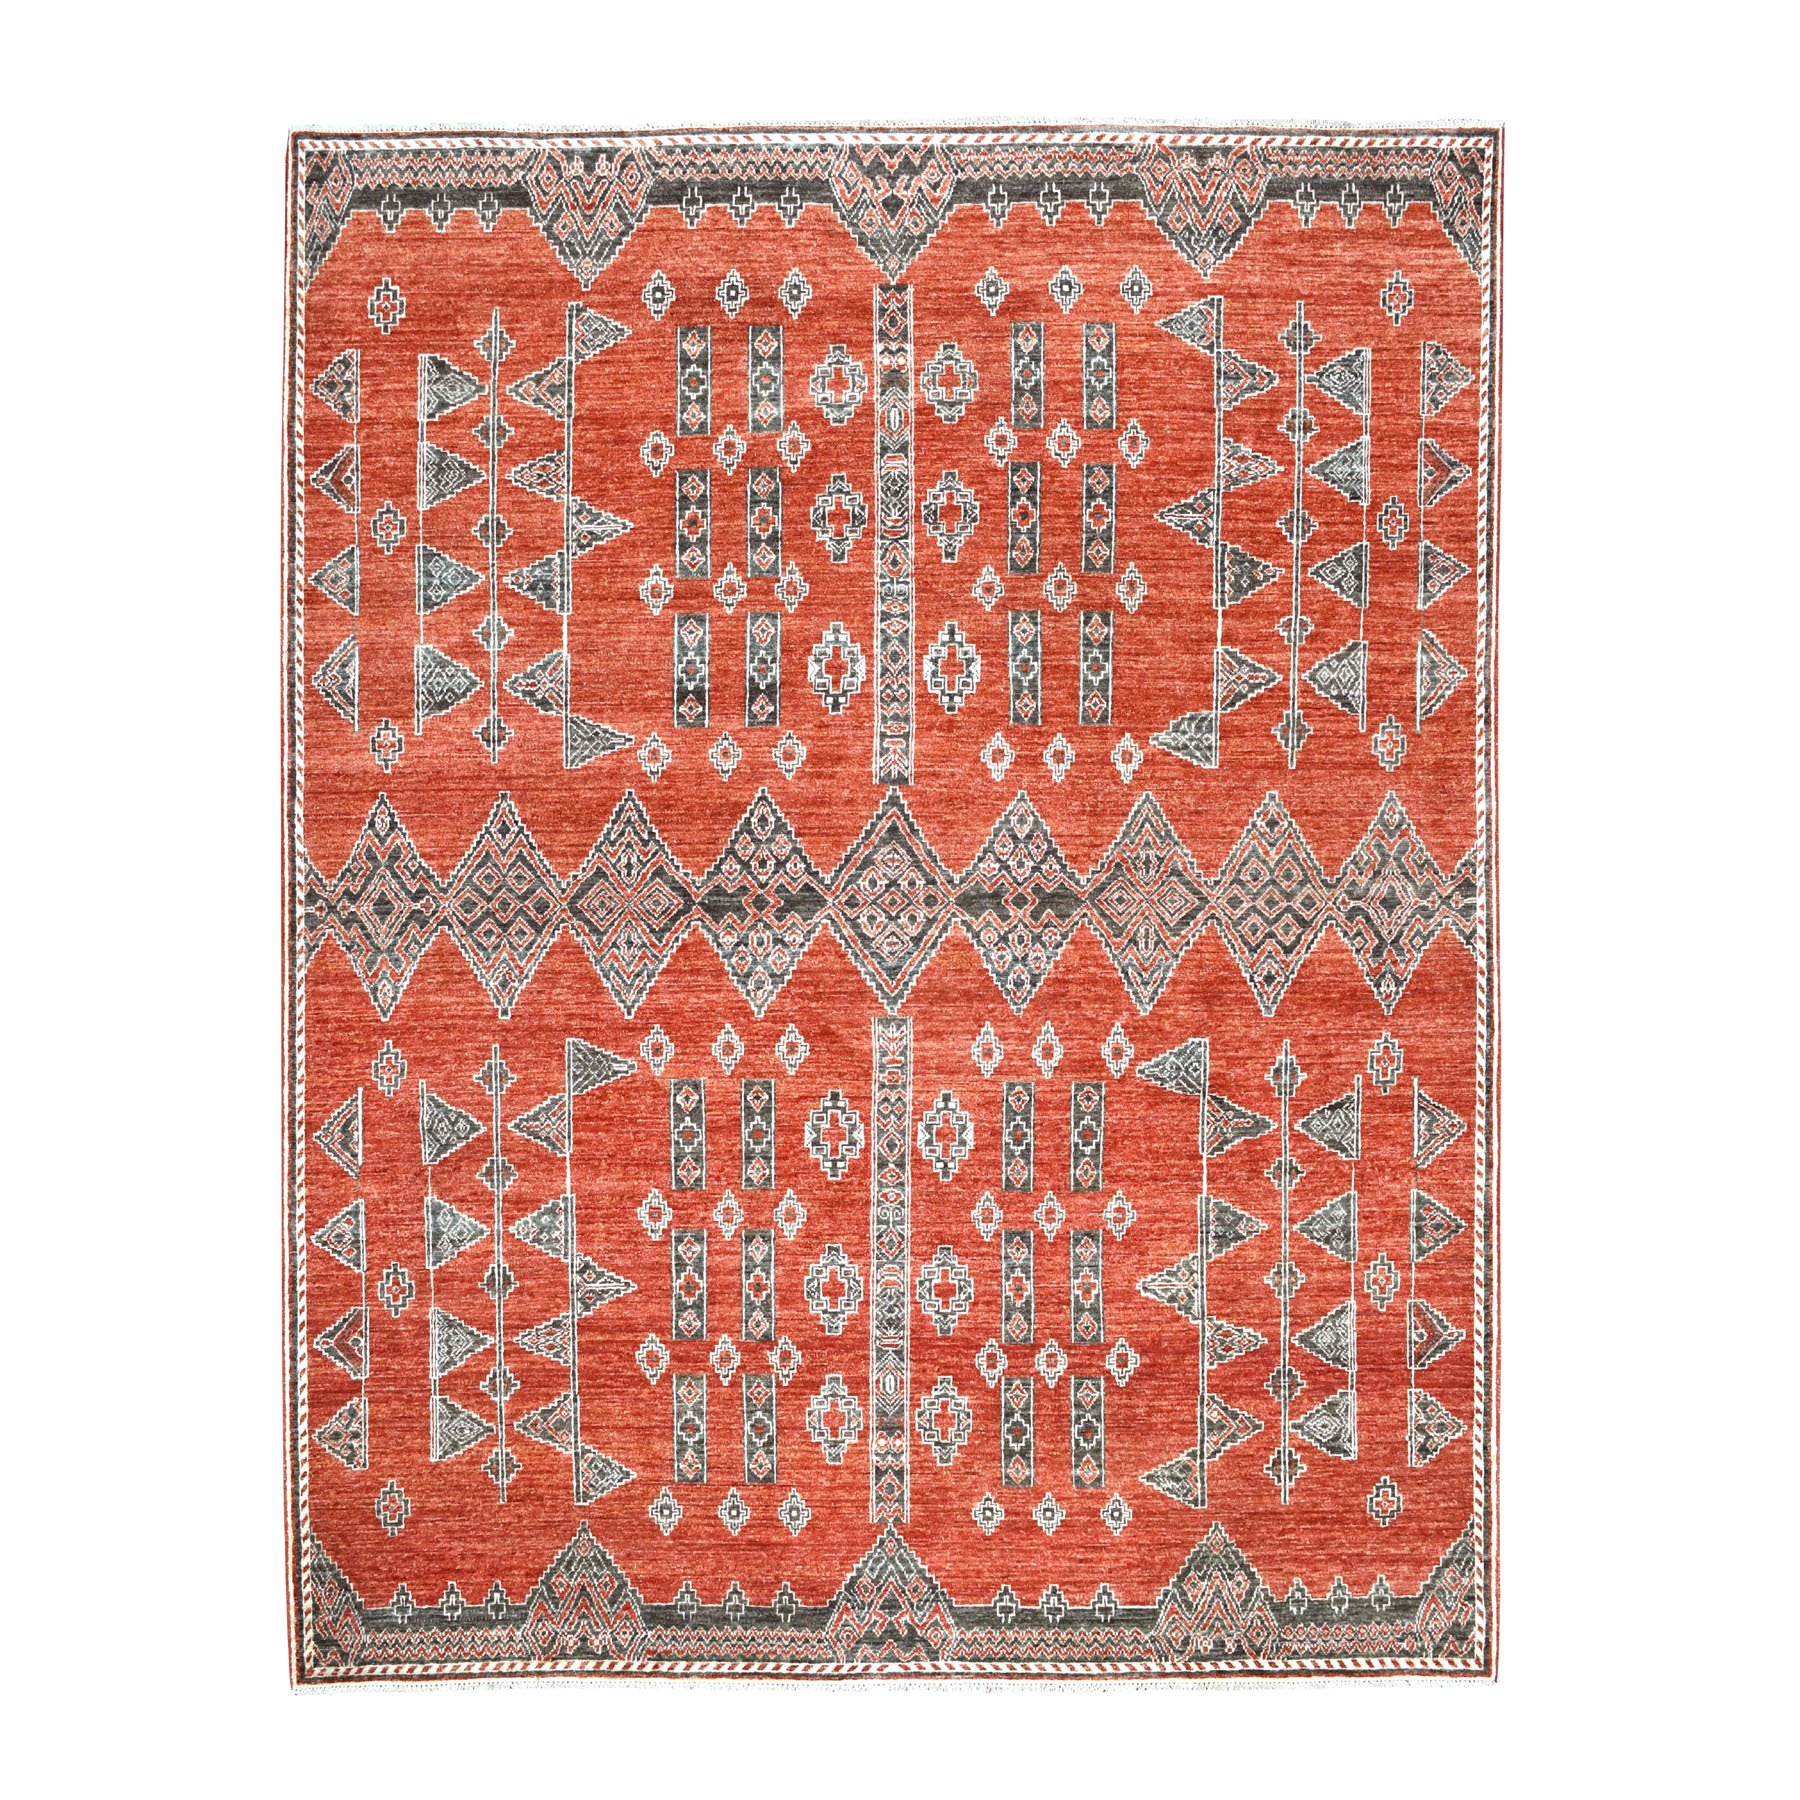 "8'x9'8"" Rust Red Pure Wool Peshawar with Southwest Motifs Hand Knotted Oriental Rug"